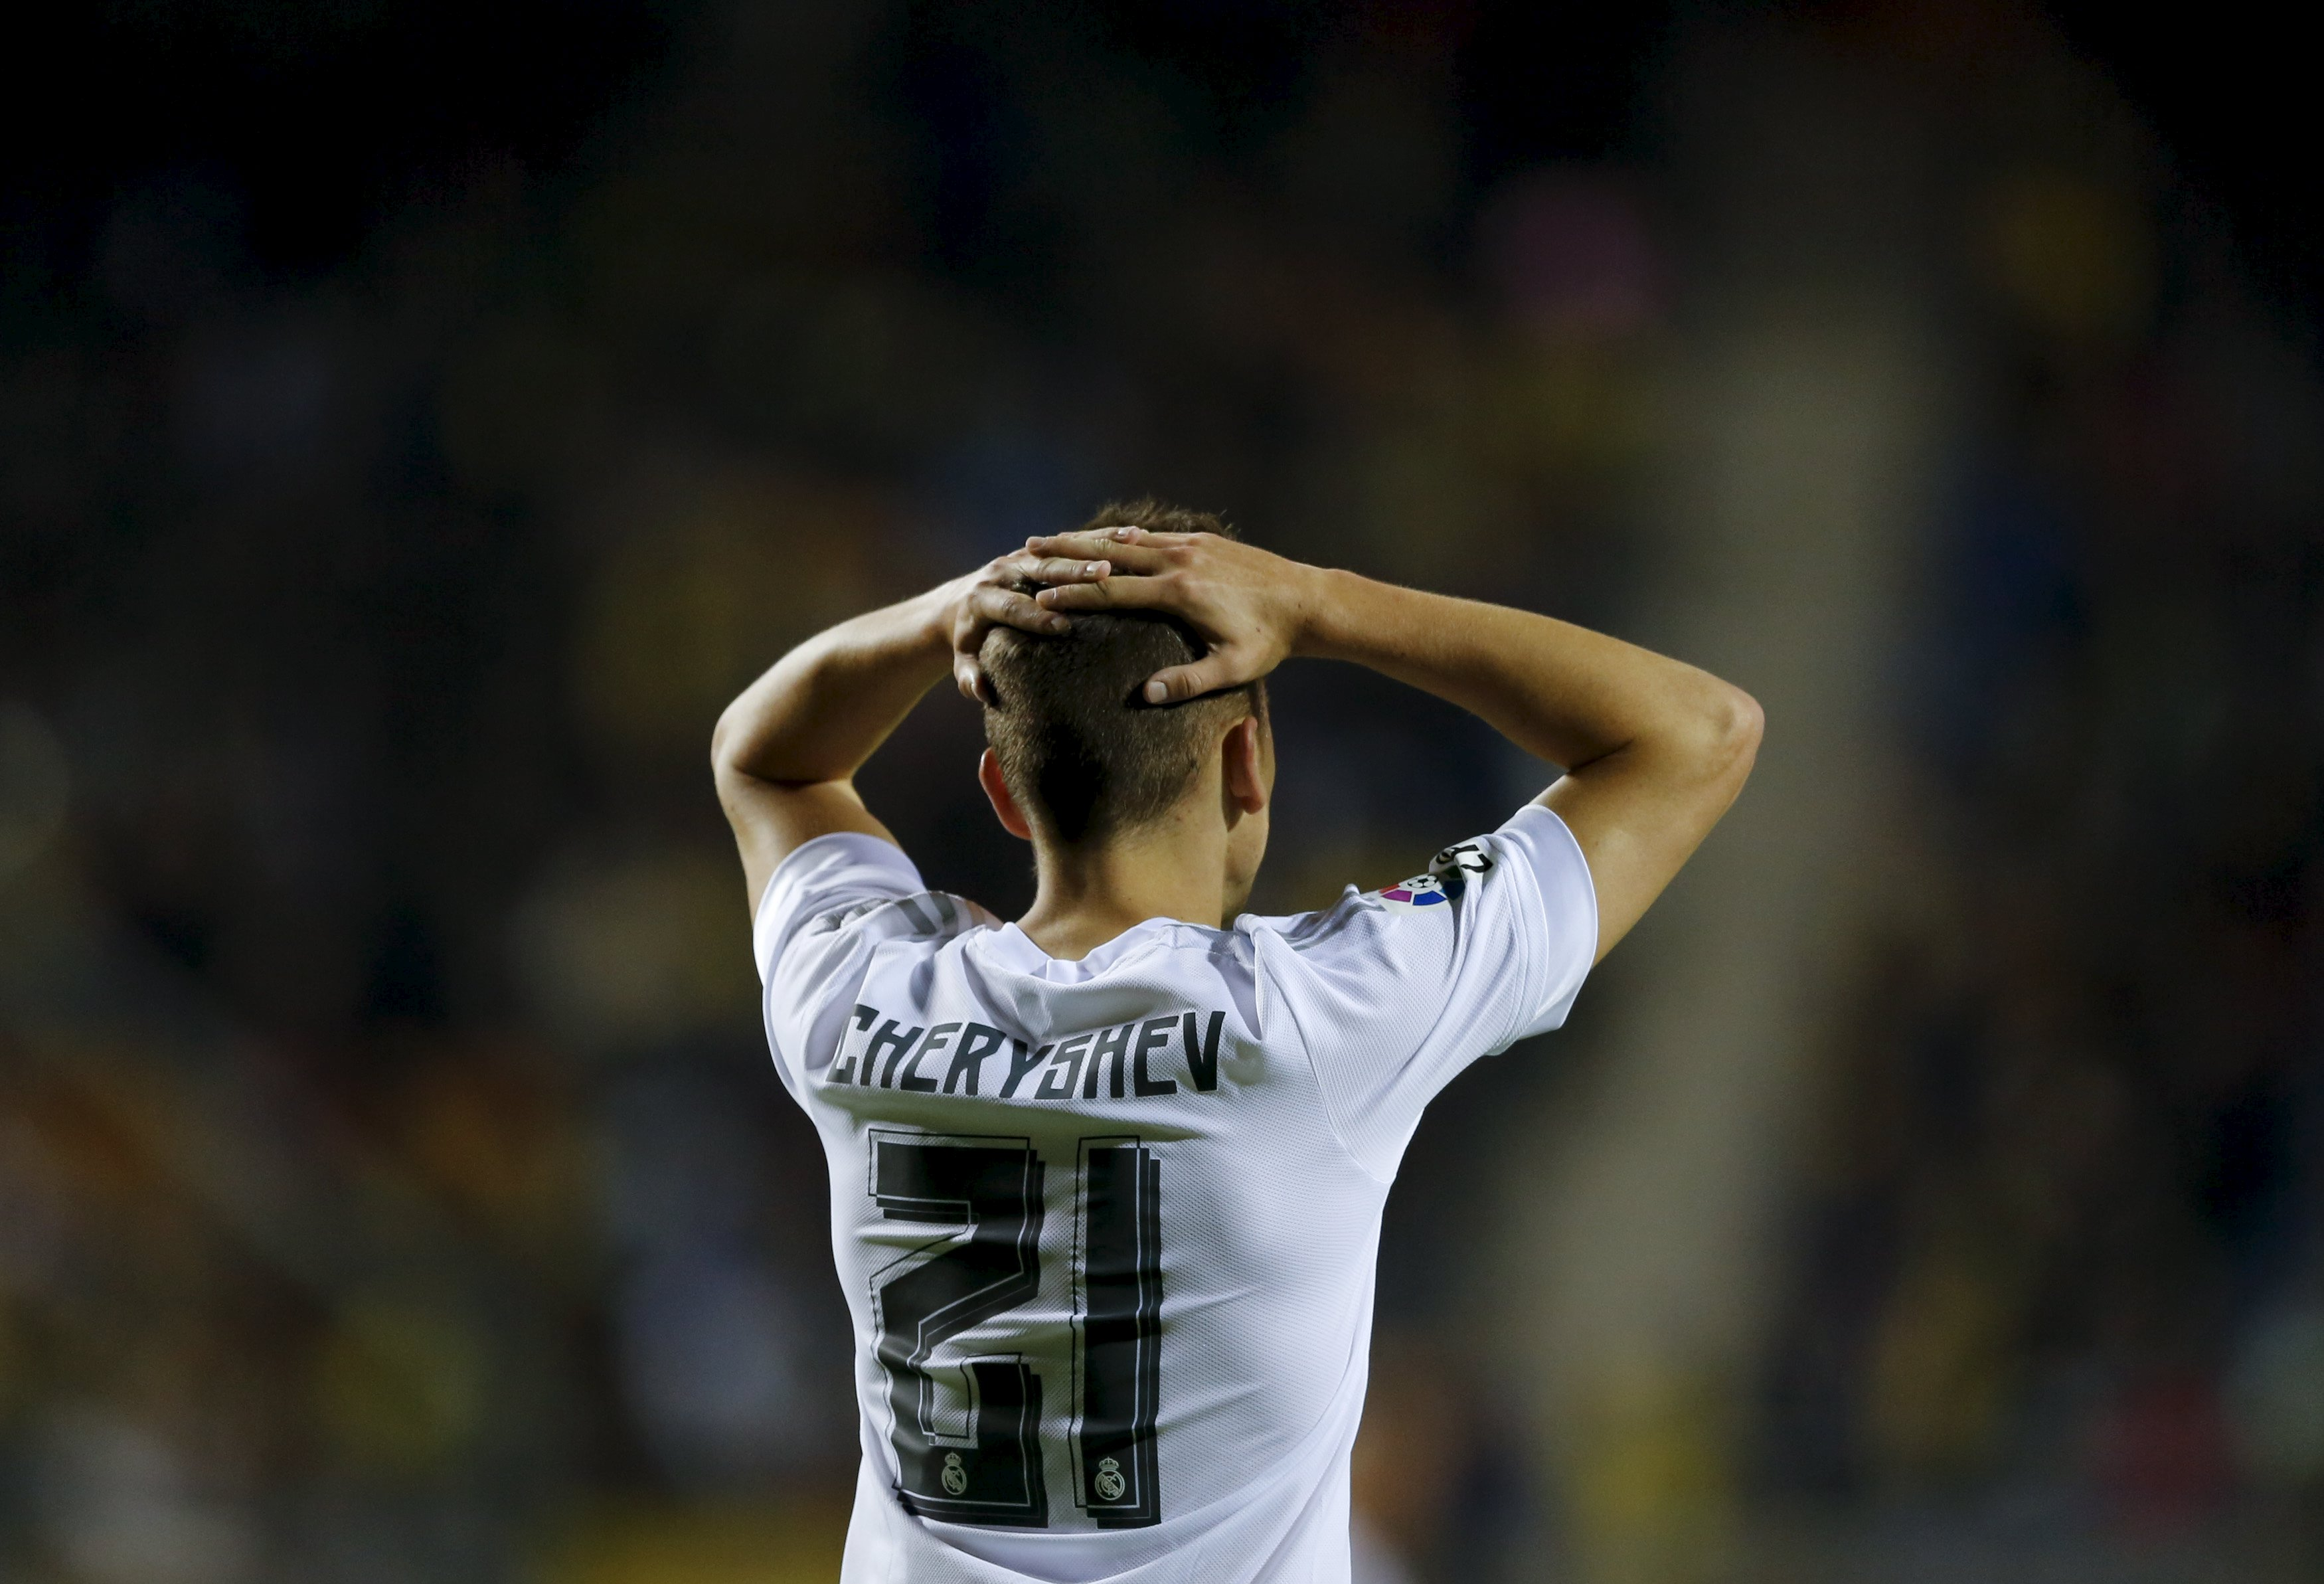 Real Madrid's Cherishev laments after missing a scoring opportunity against Cadiz during a soccer match in Cadiz, southern Spain